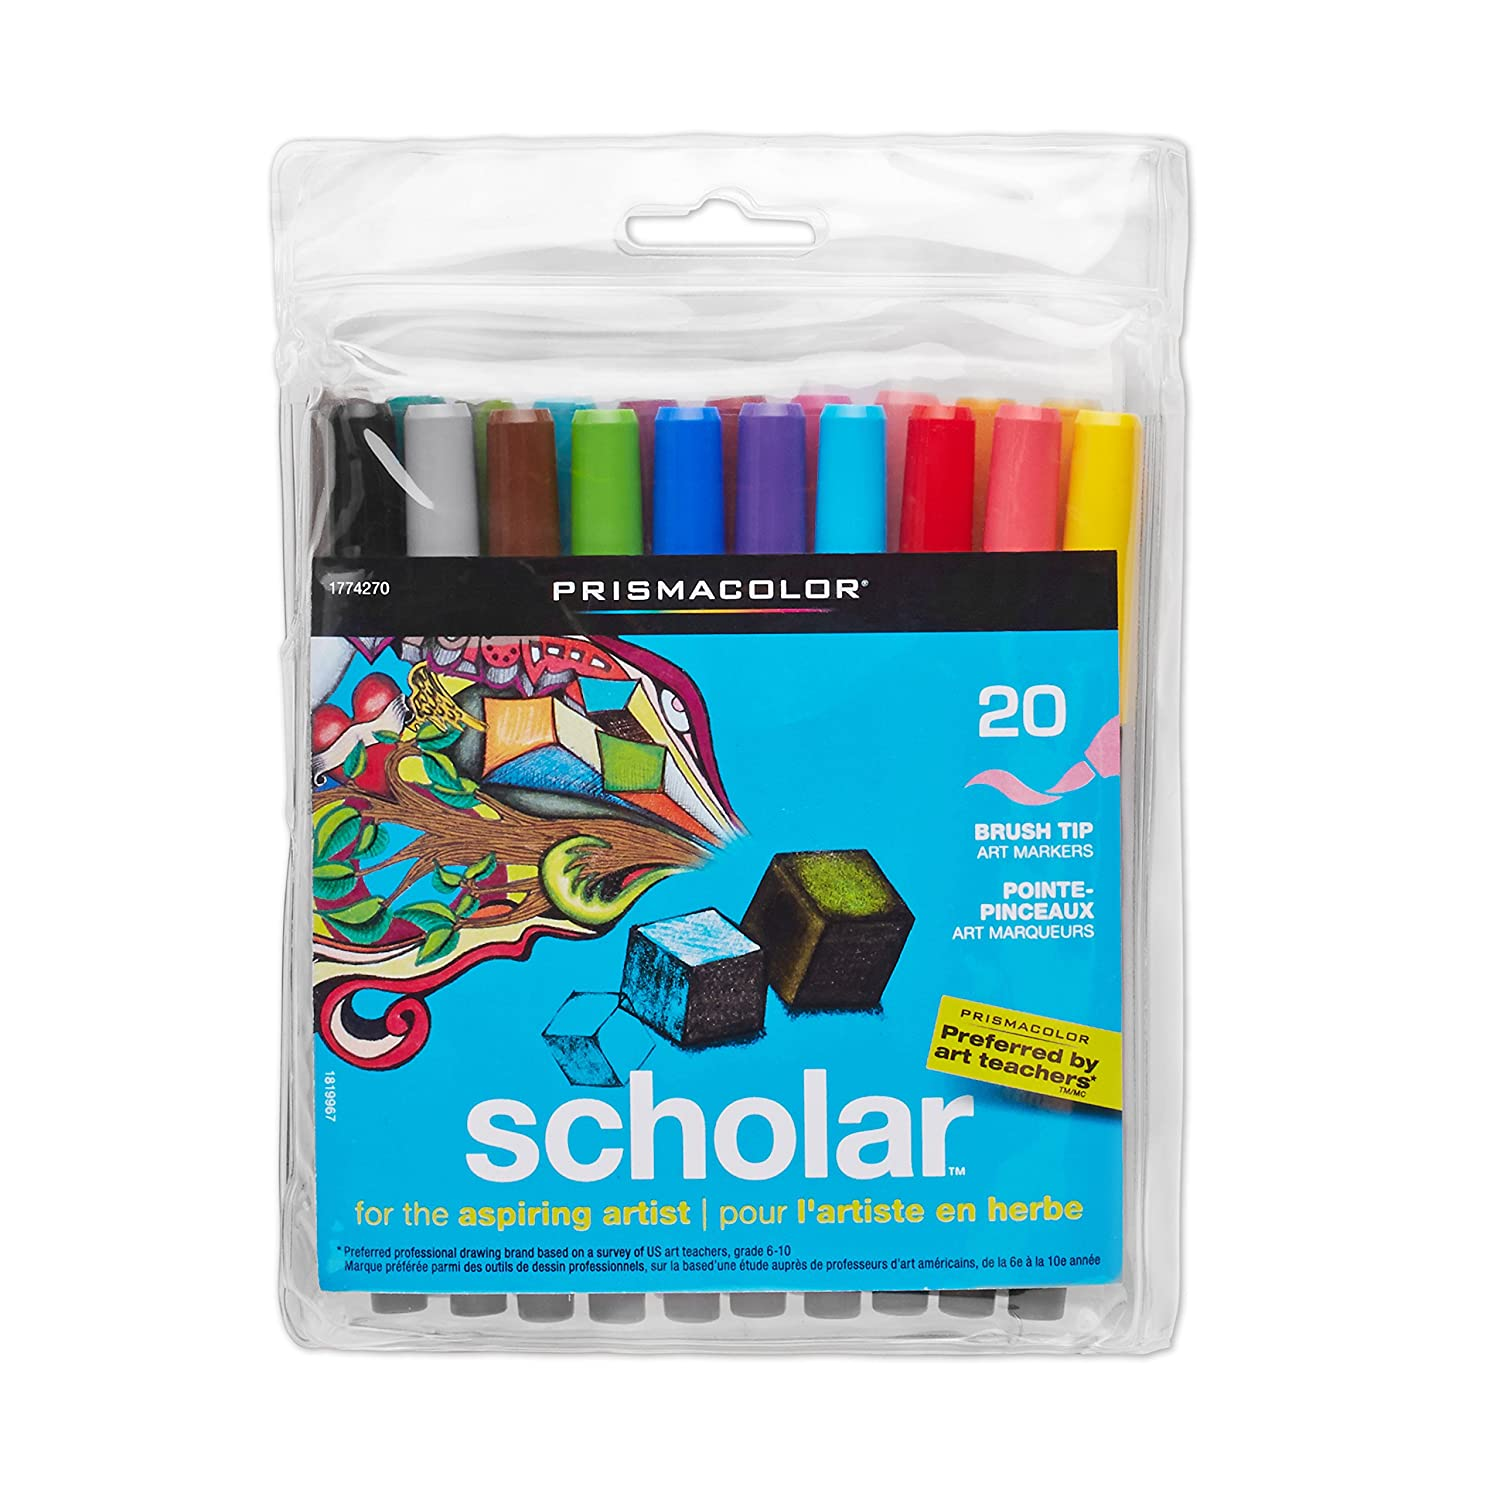 Prismacolor Scholar Art Markers, Brush Tip, Assorted, 20-Count